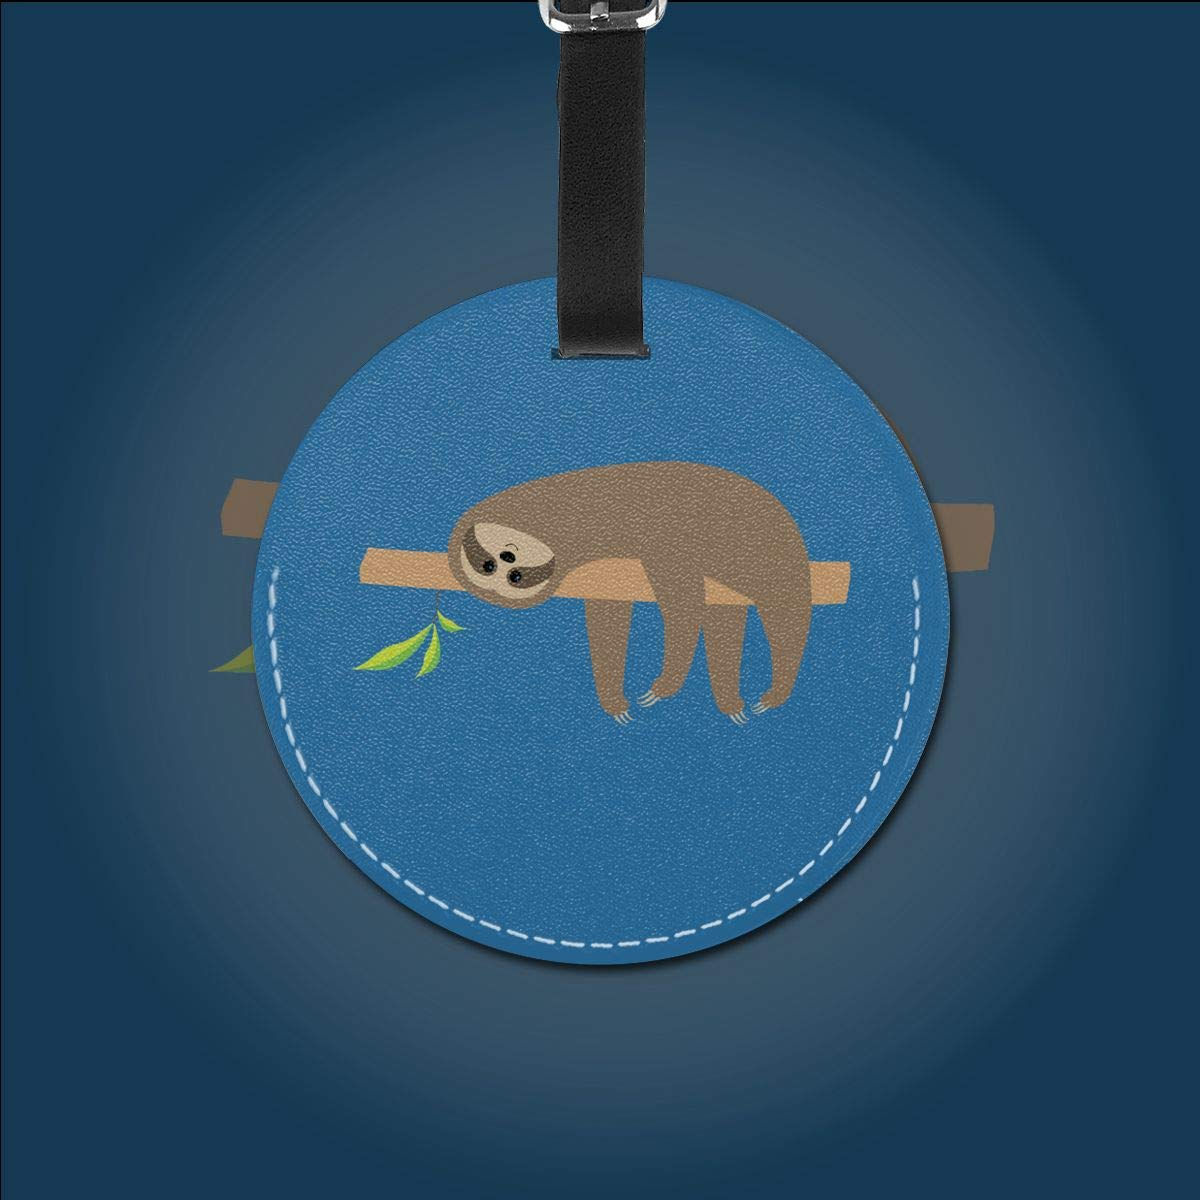 1pcs,2pcs,4pcs Sloth Lying On Tree Branch Cute Pu Leather Double Sides Print Round Luggage Tag Mutilple Packs